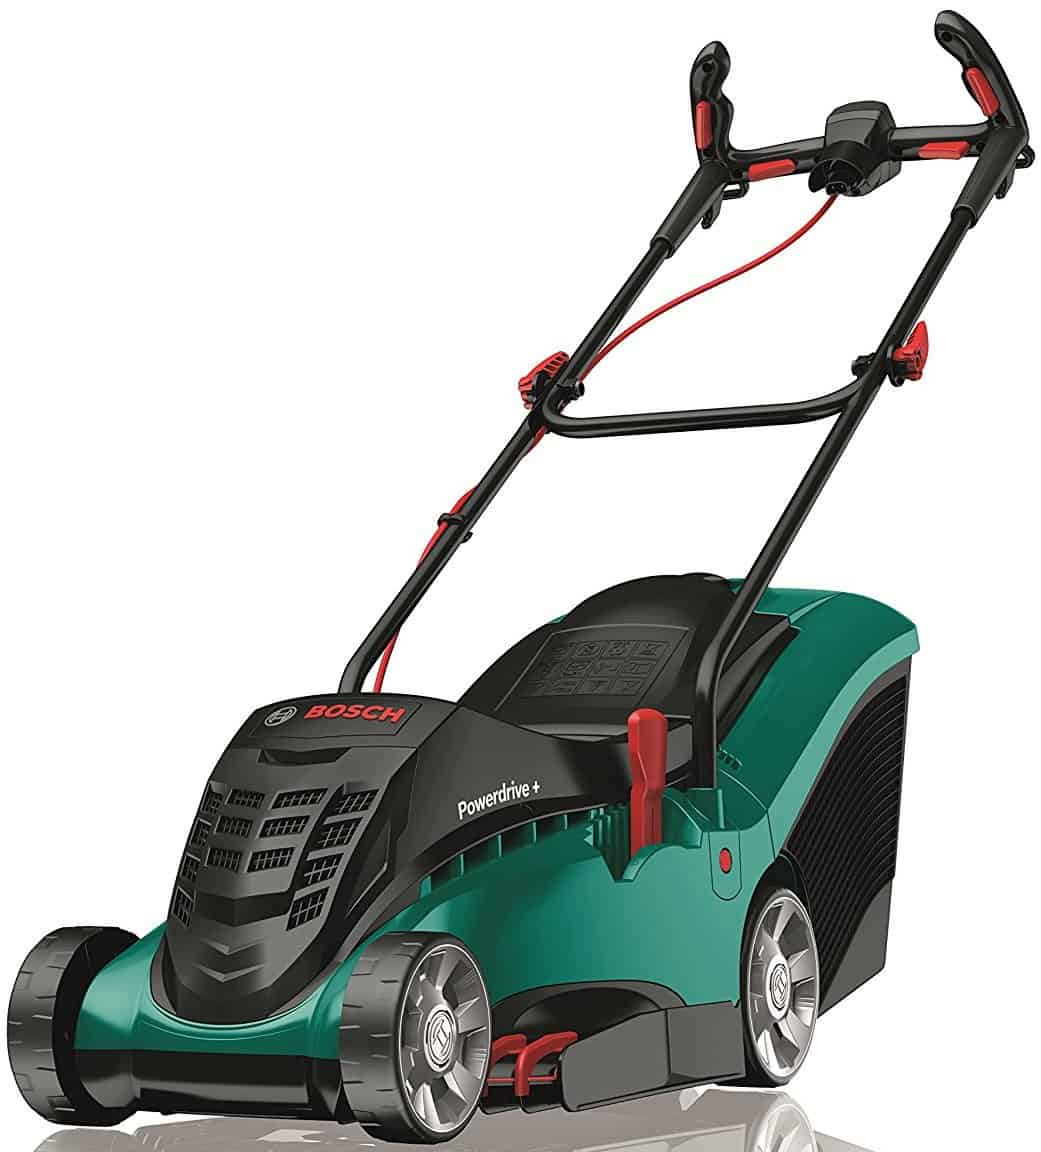 Best Electric Lawn Mower for Large Gardens – Bosch